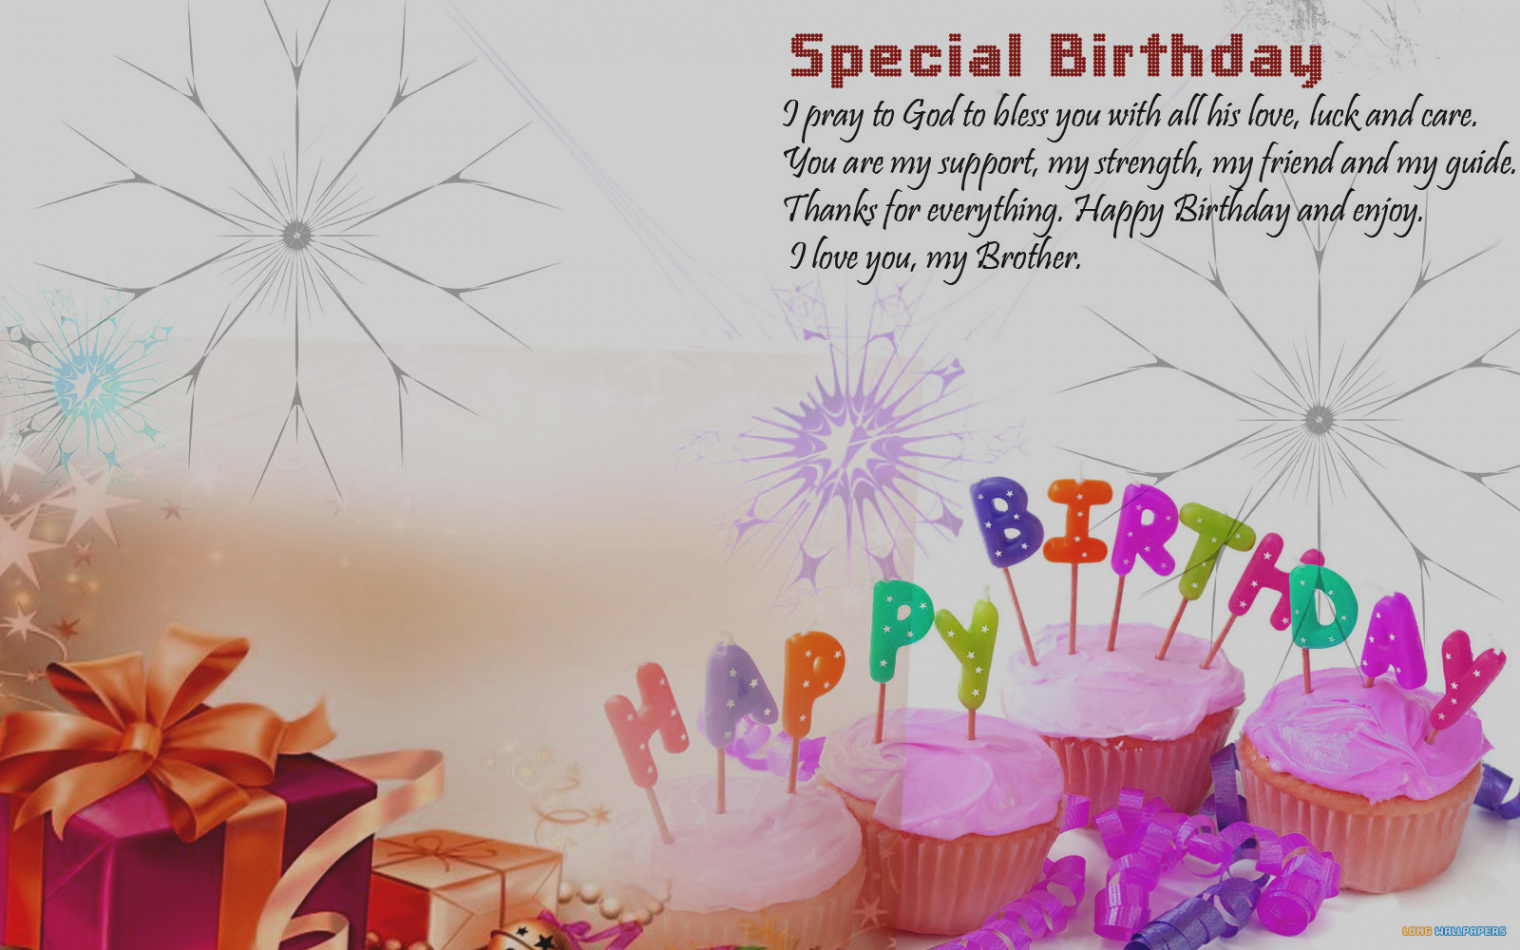 text message birthday cards ; images-of-text-message-birthday-cards-birthday-invitations-by-sms-hd-images-3-hd-wallpapers-places-to